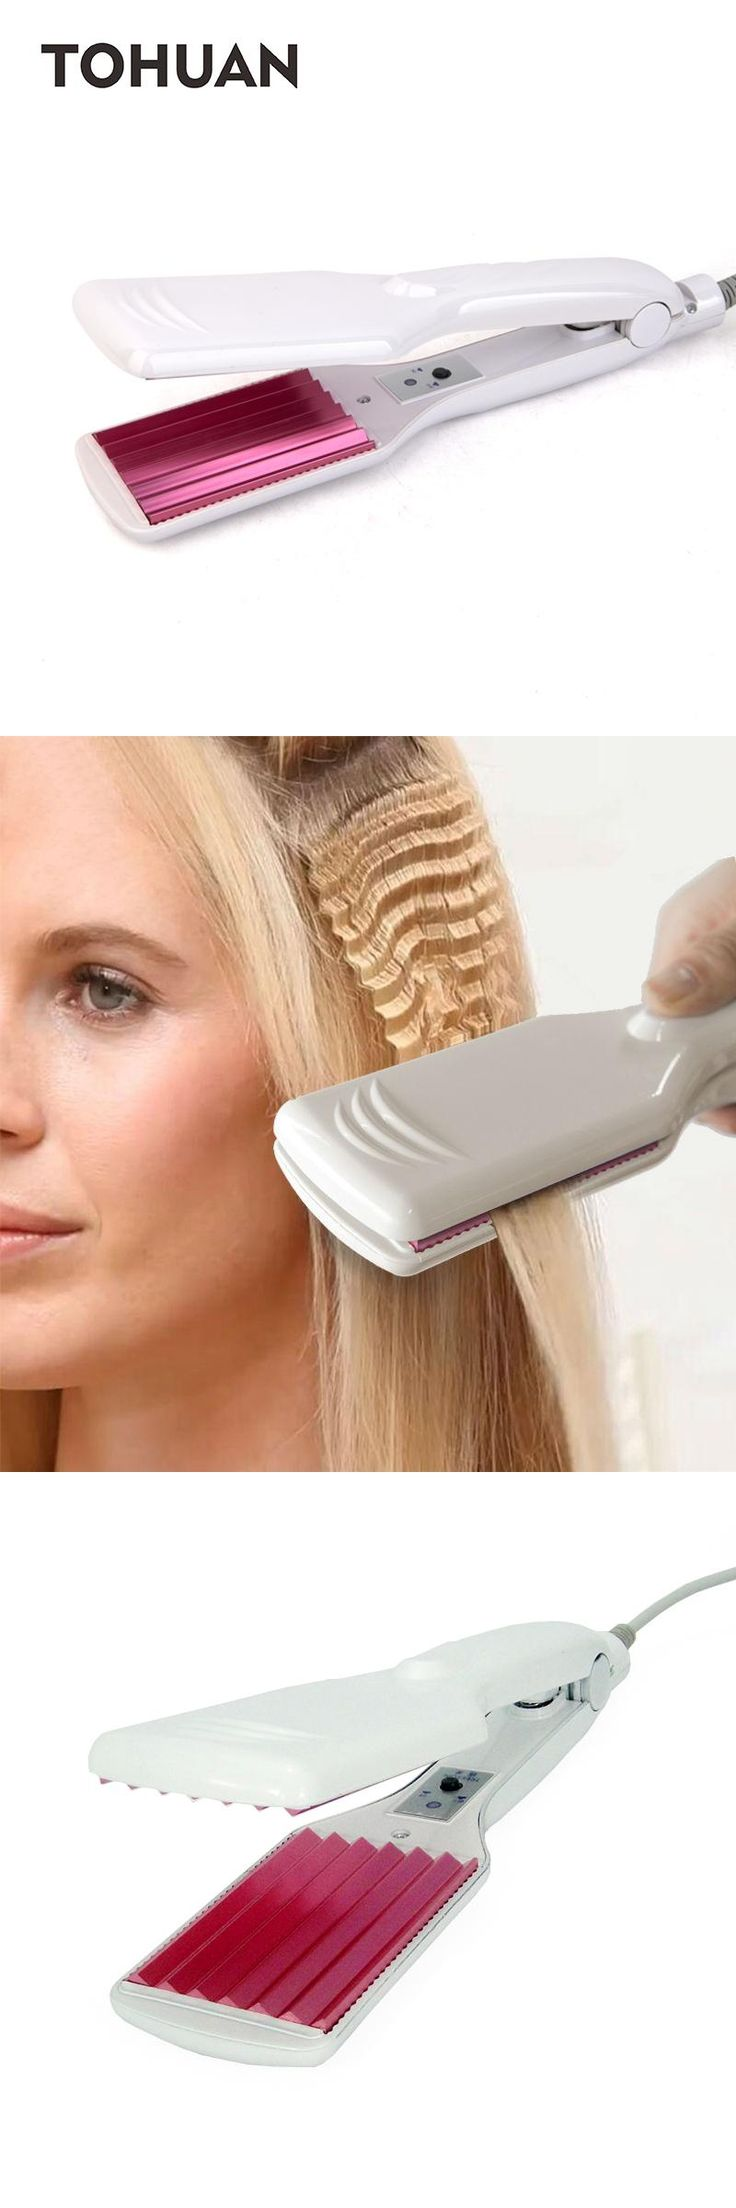 [Visit to Buy] Hot corrugated iron hair straightener iron crimped hairstyle Electronic chapinha corrugation flat irons wave styling tools #Advertisement